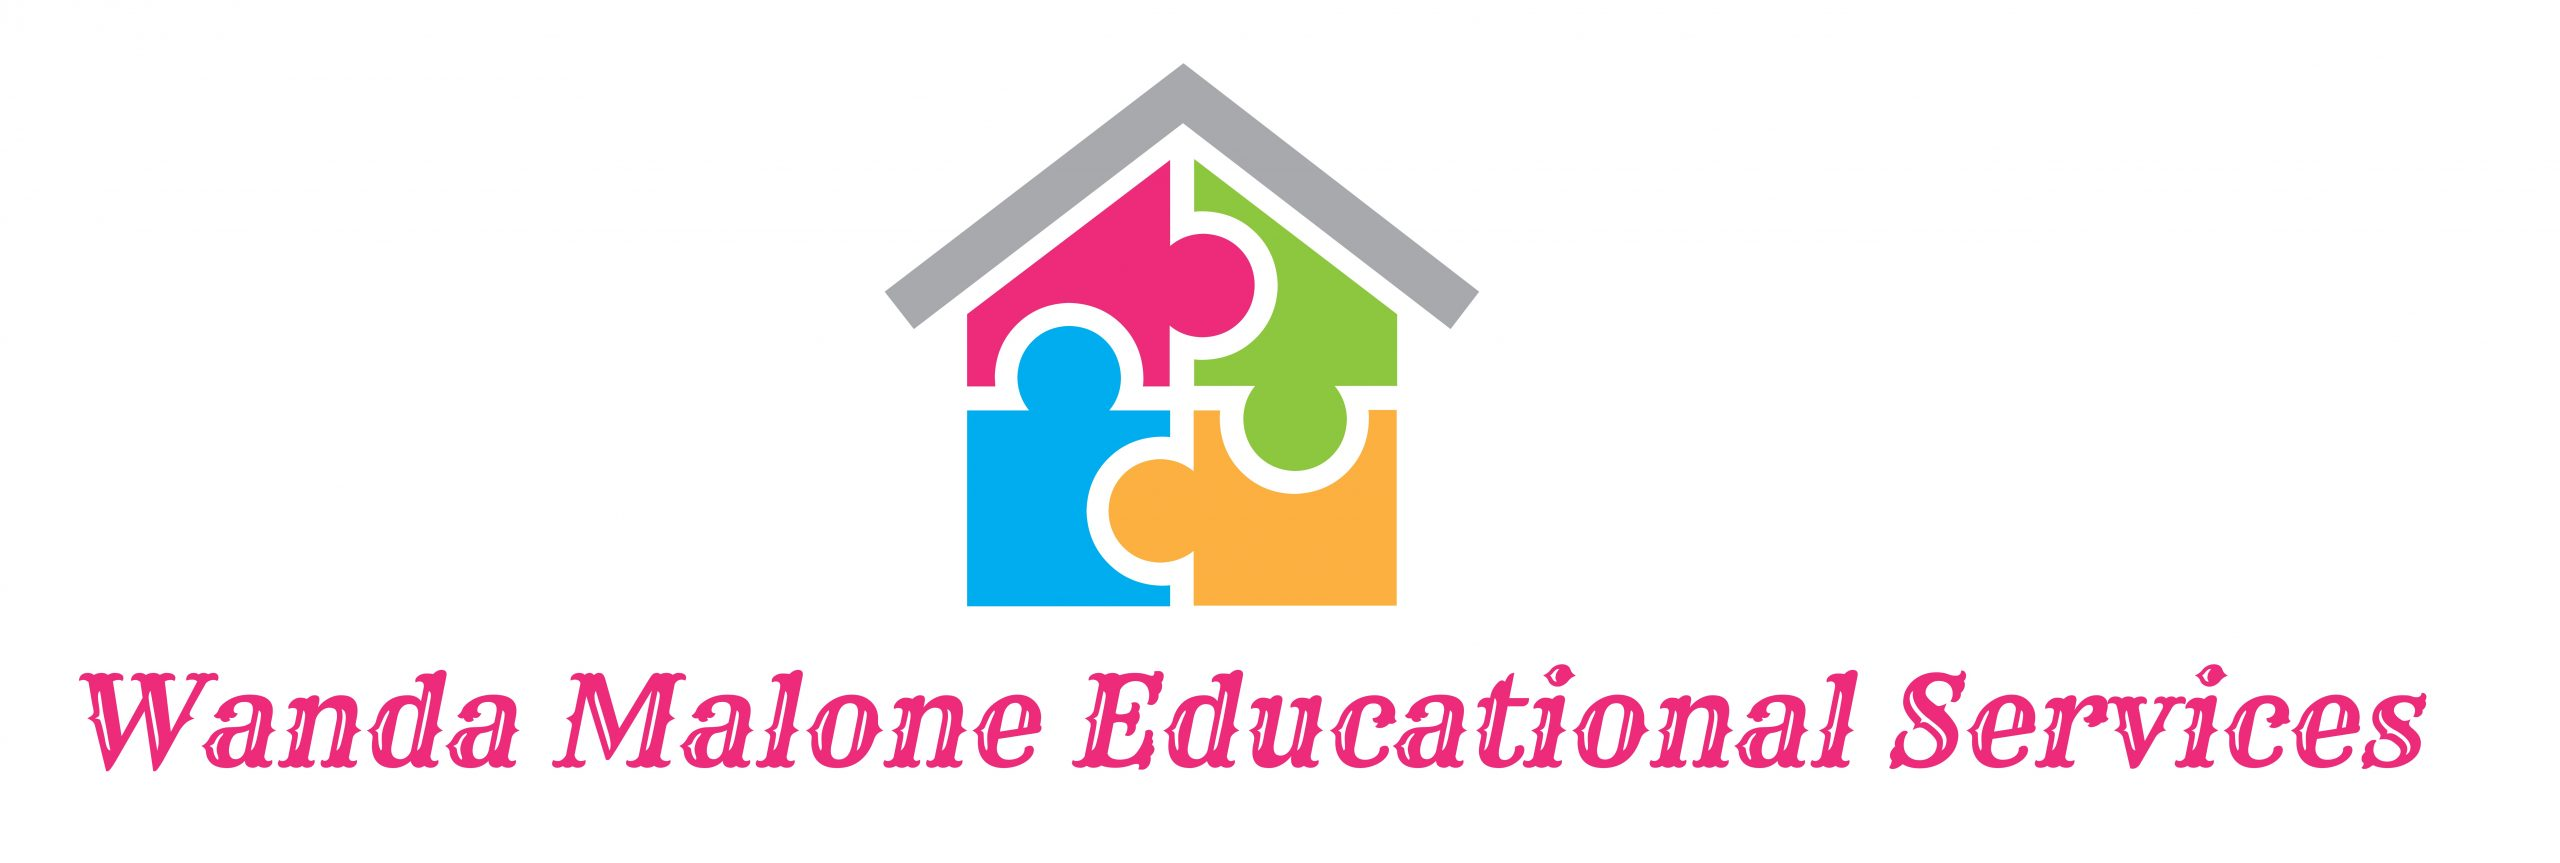 Wanda Malone Educational Services logo